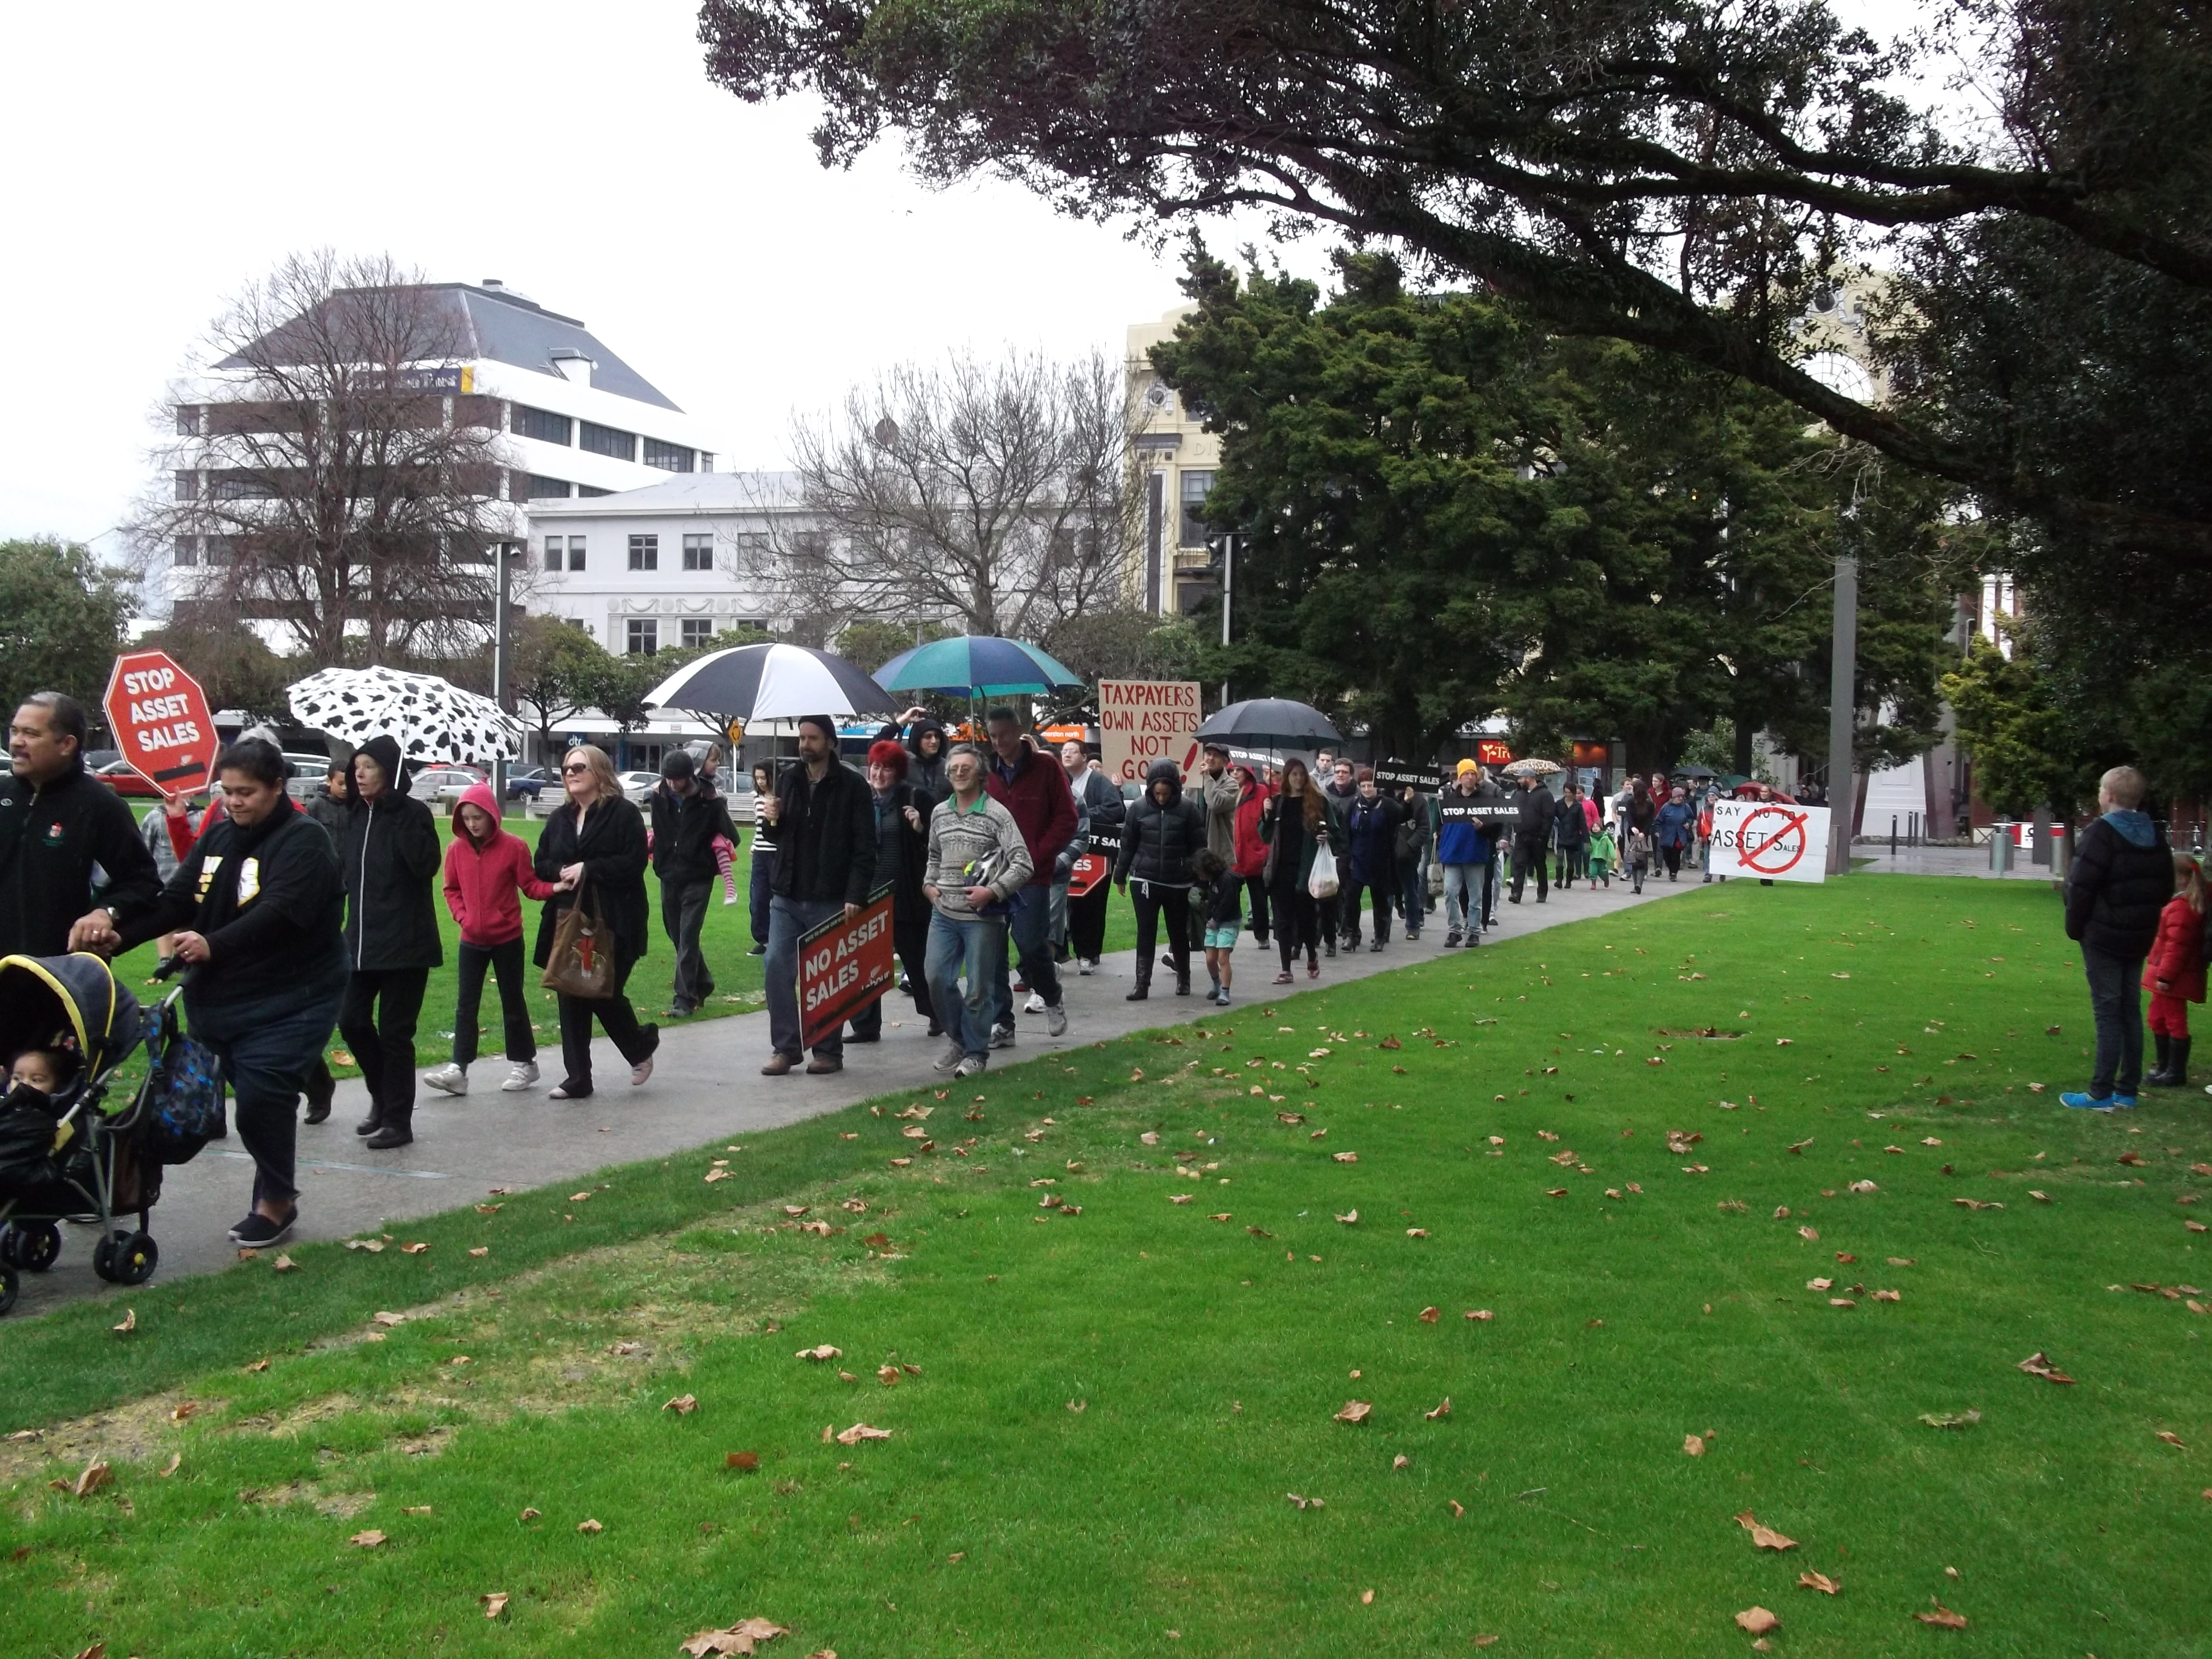 Protest March in Palmerston